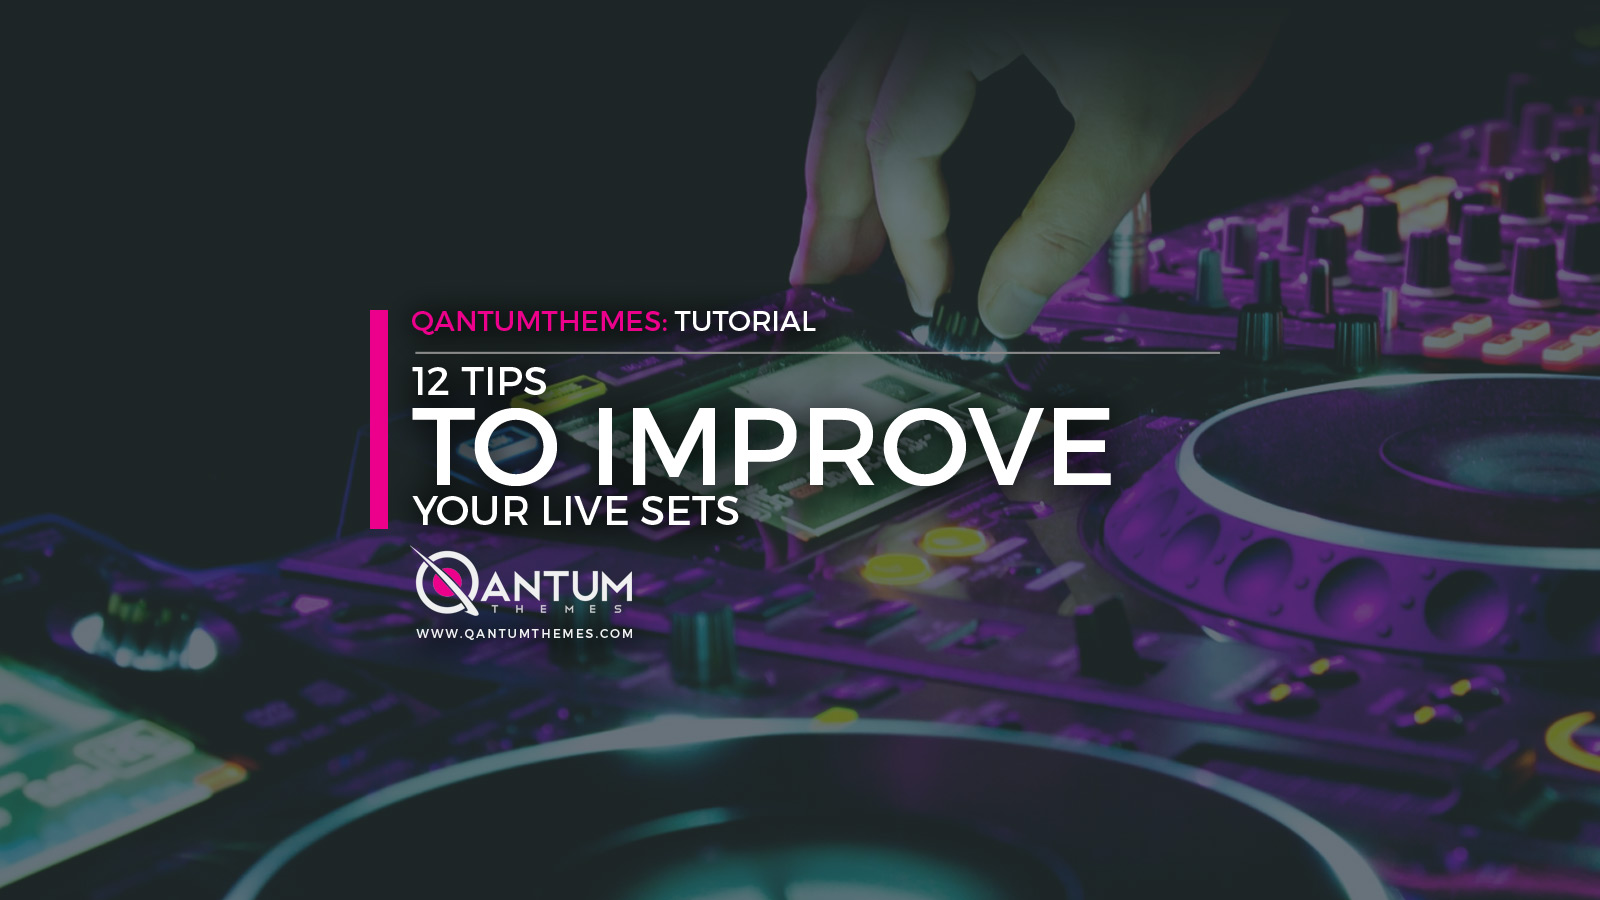 12 Tips To Improve Your Live Sets